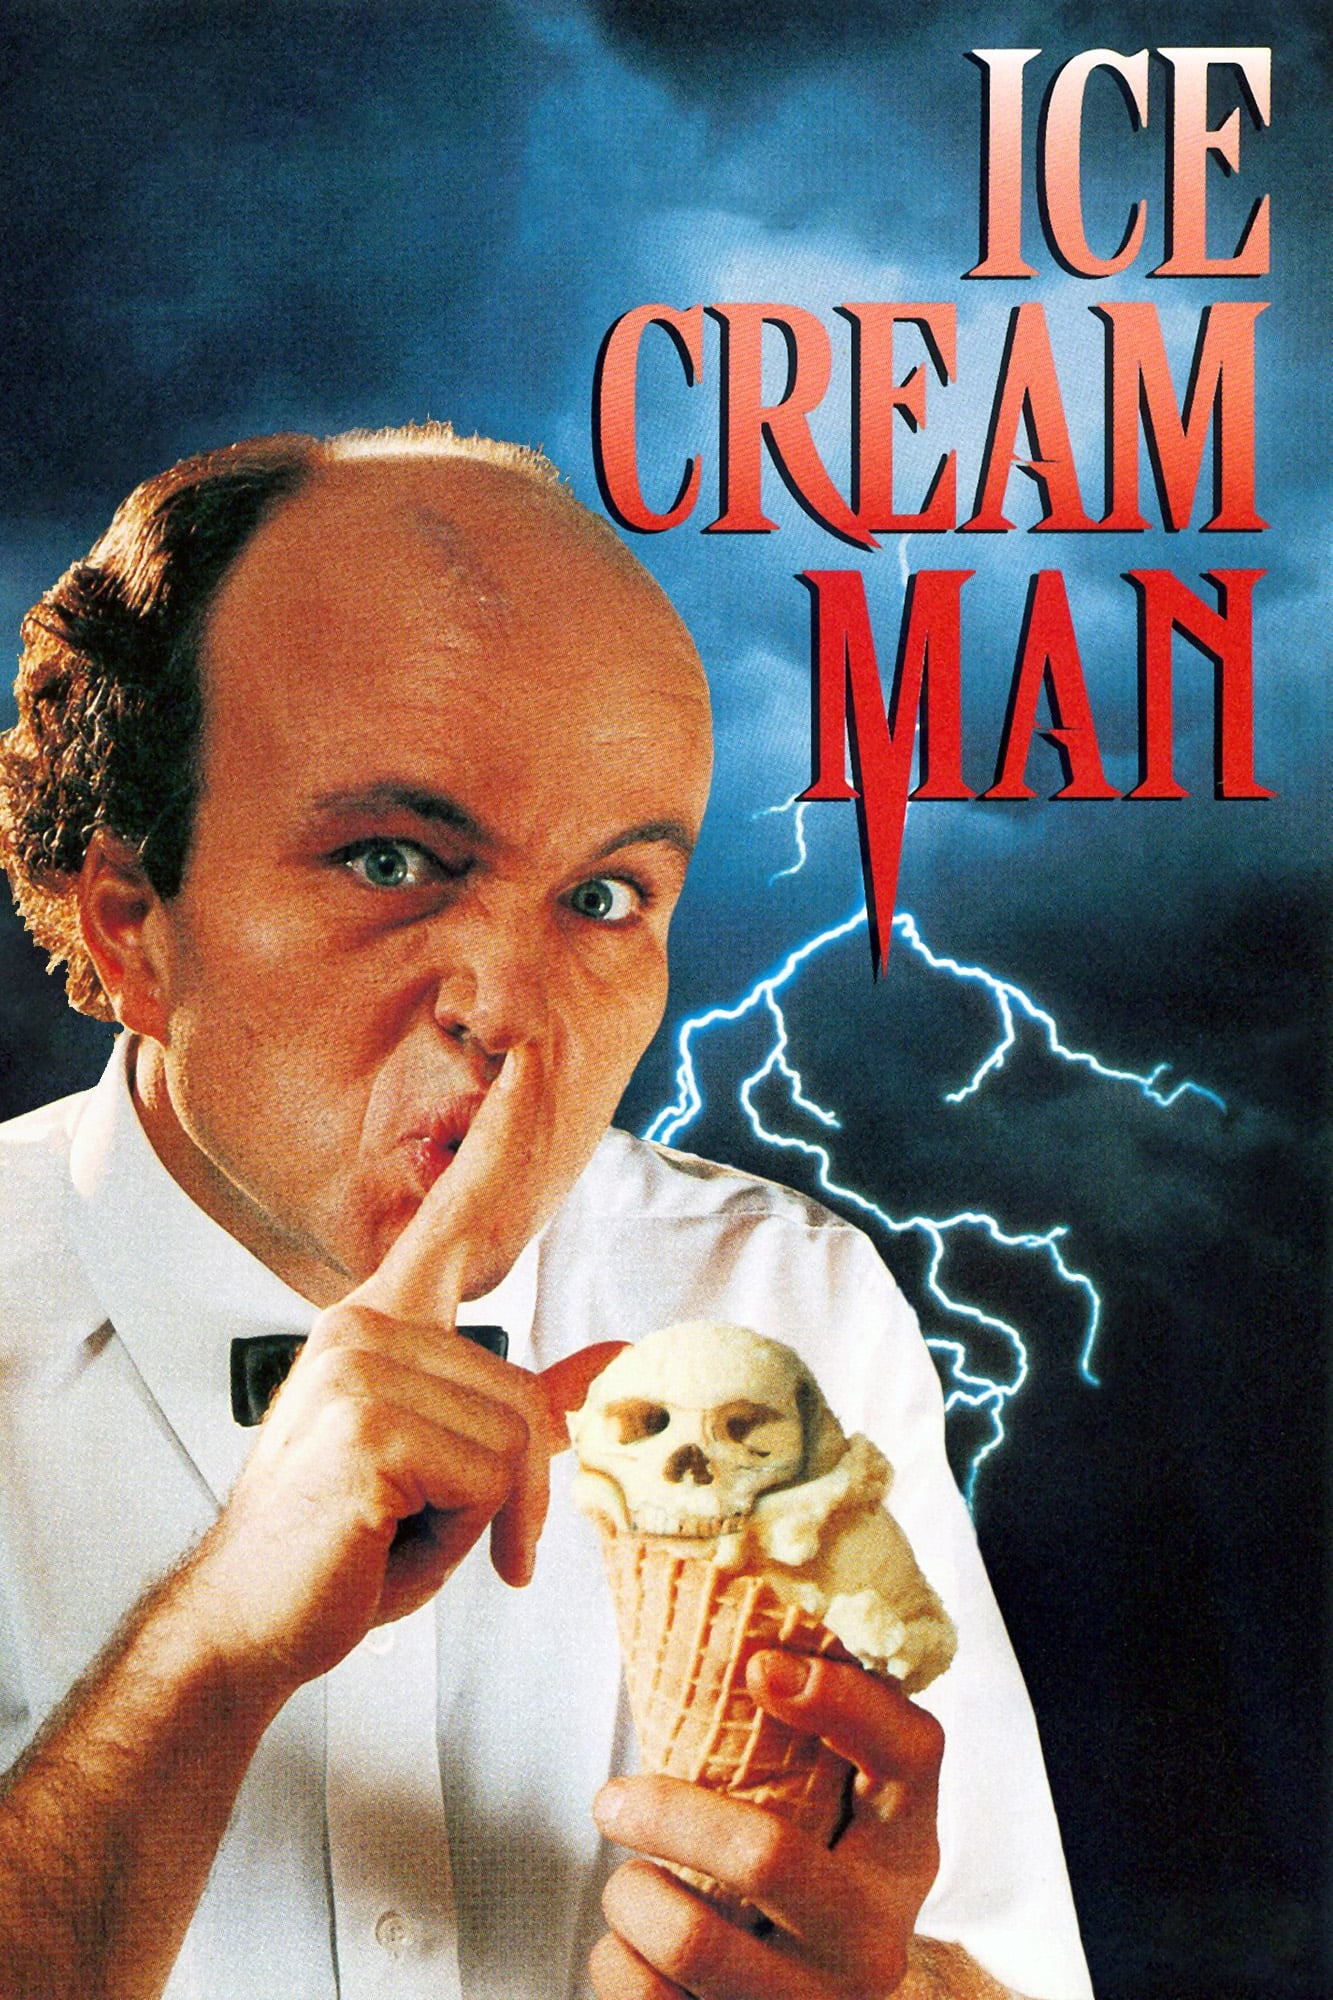 Poster for ICE CREAM MAN